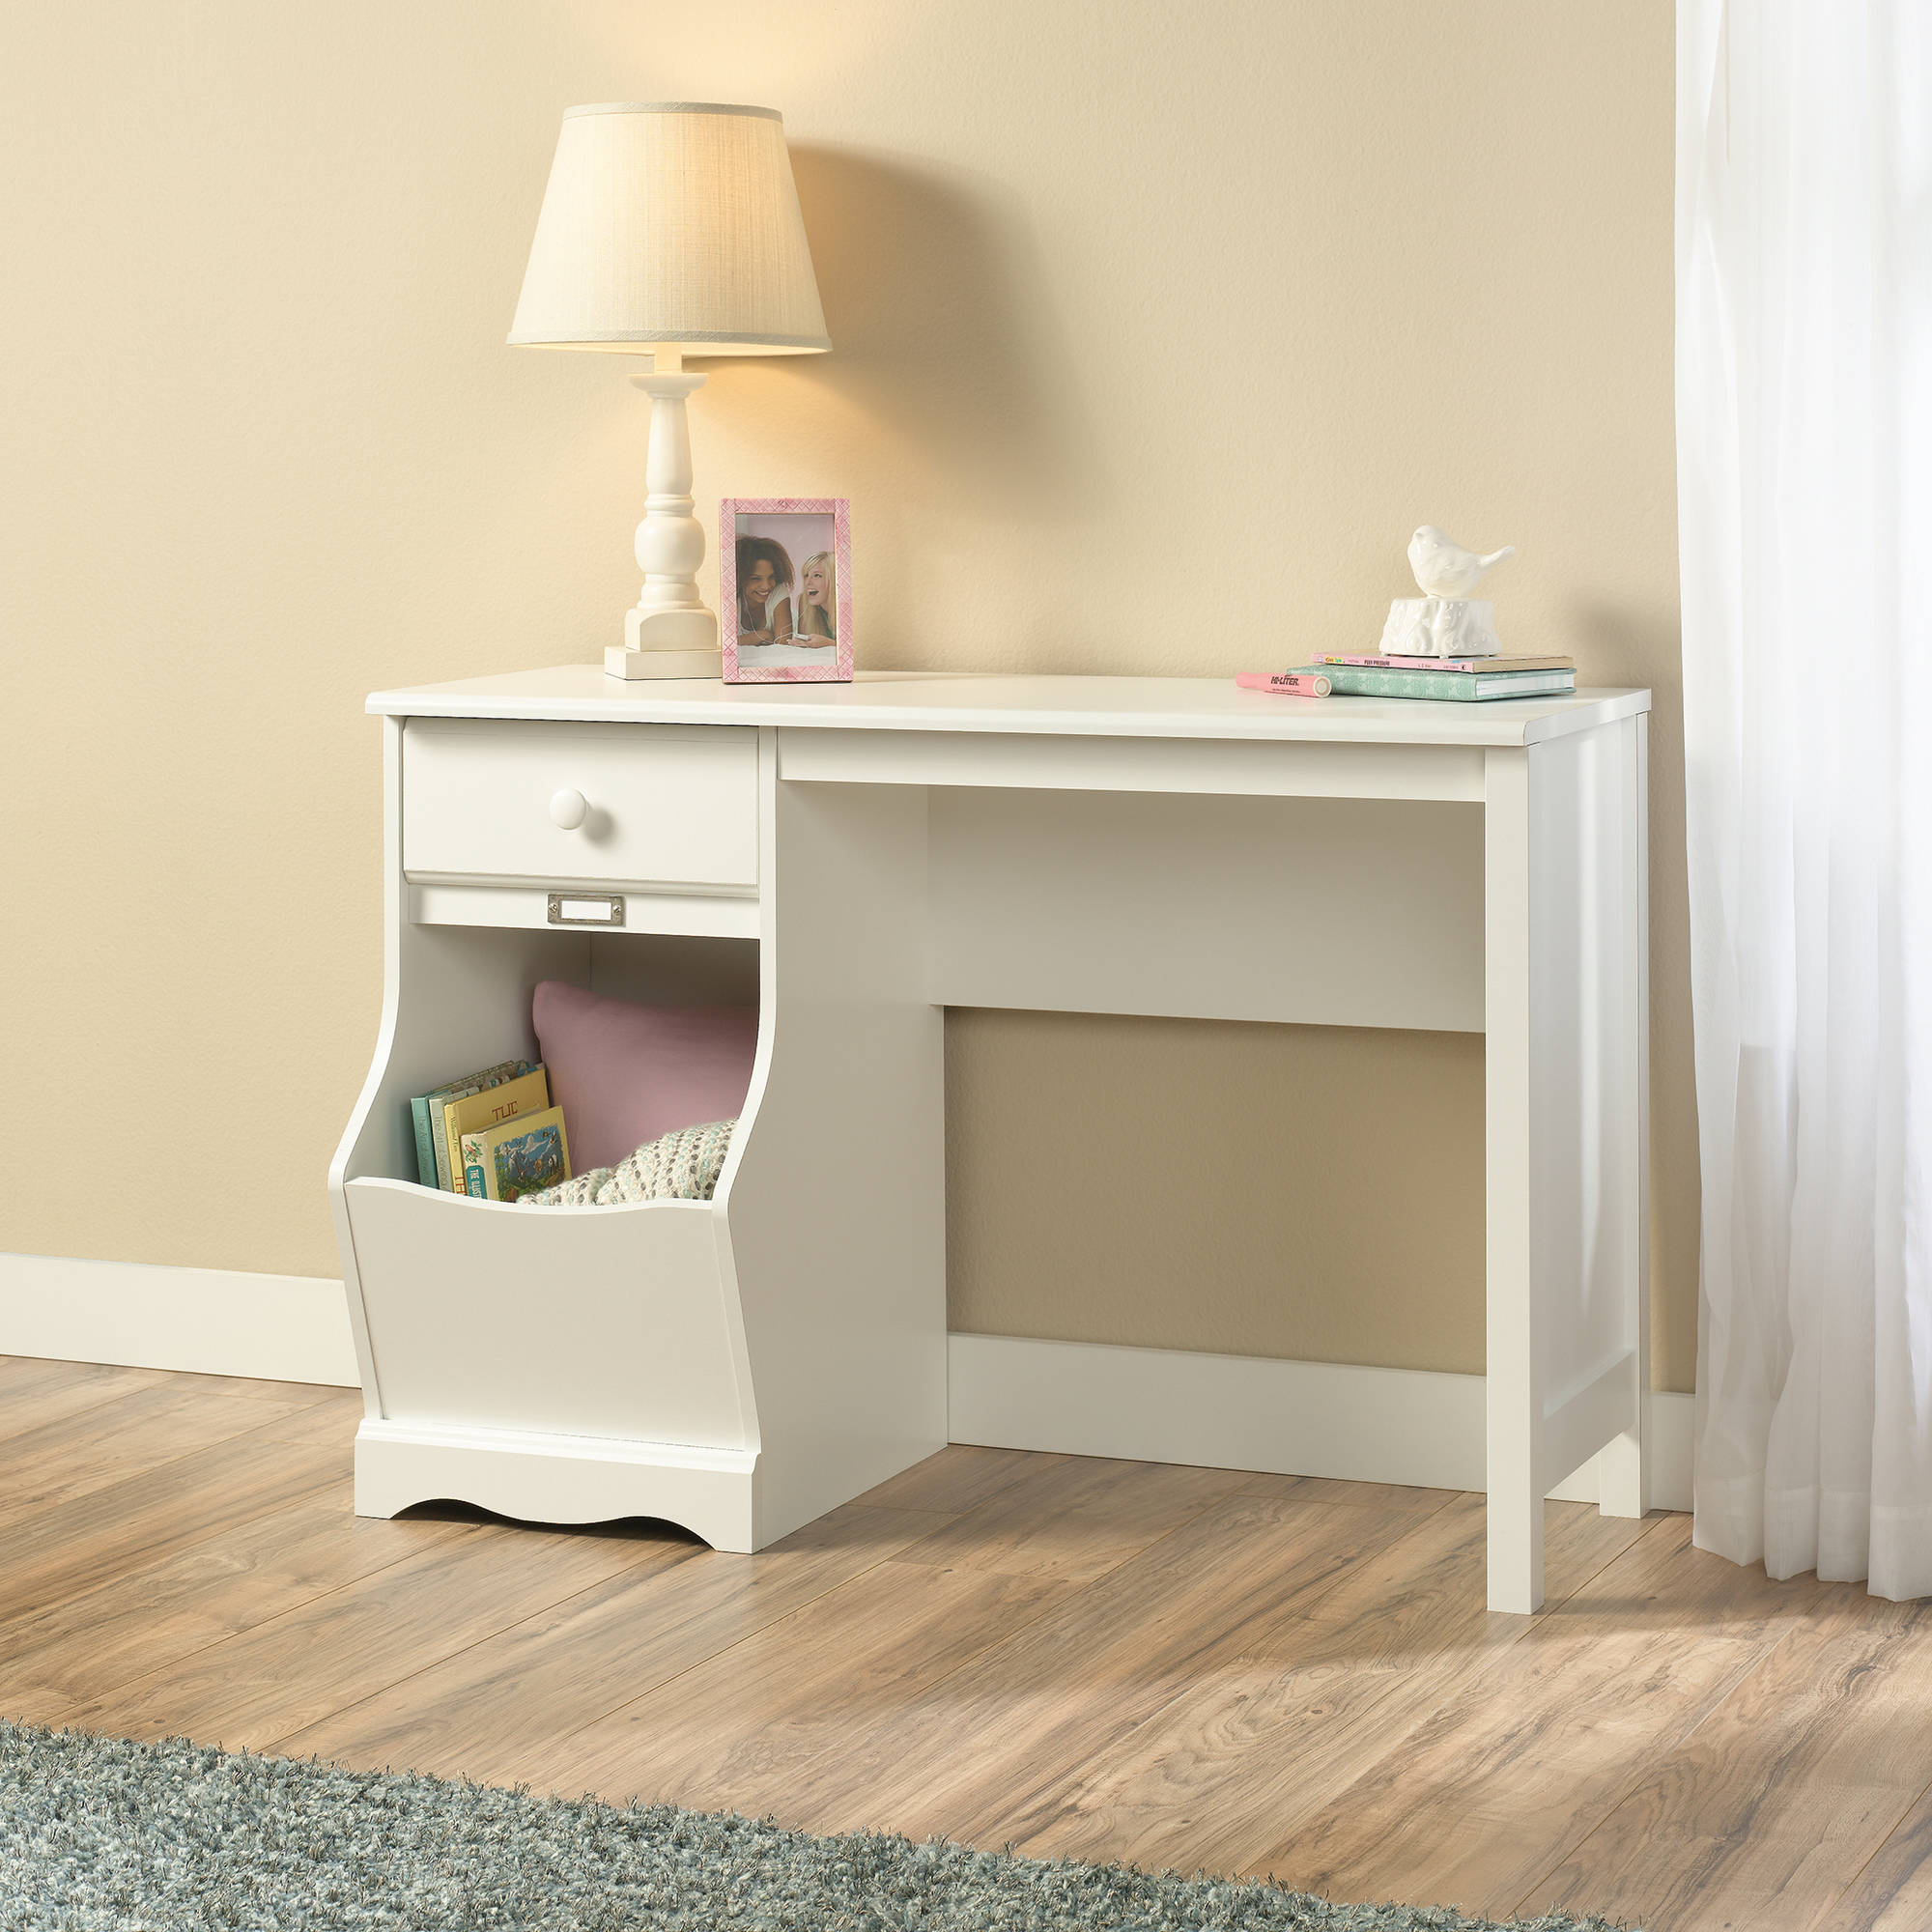 Sauder Storybook Desk, Soft White Finish